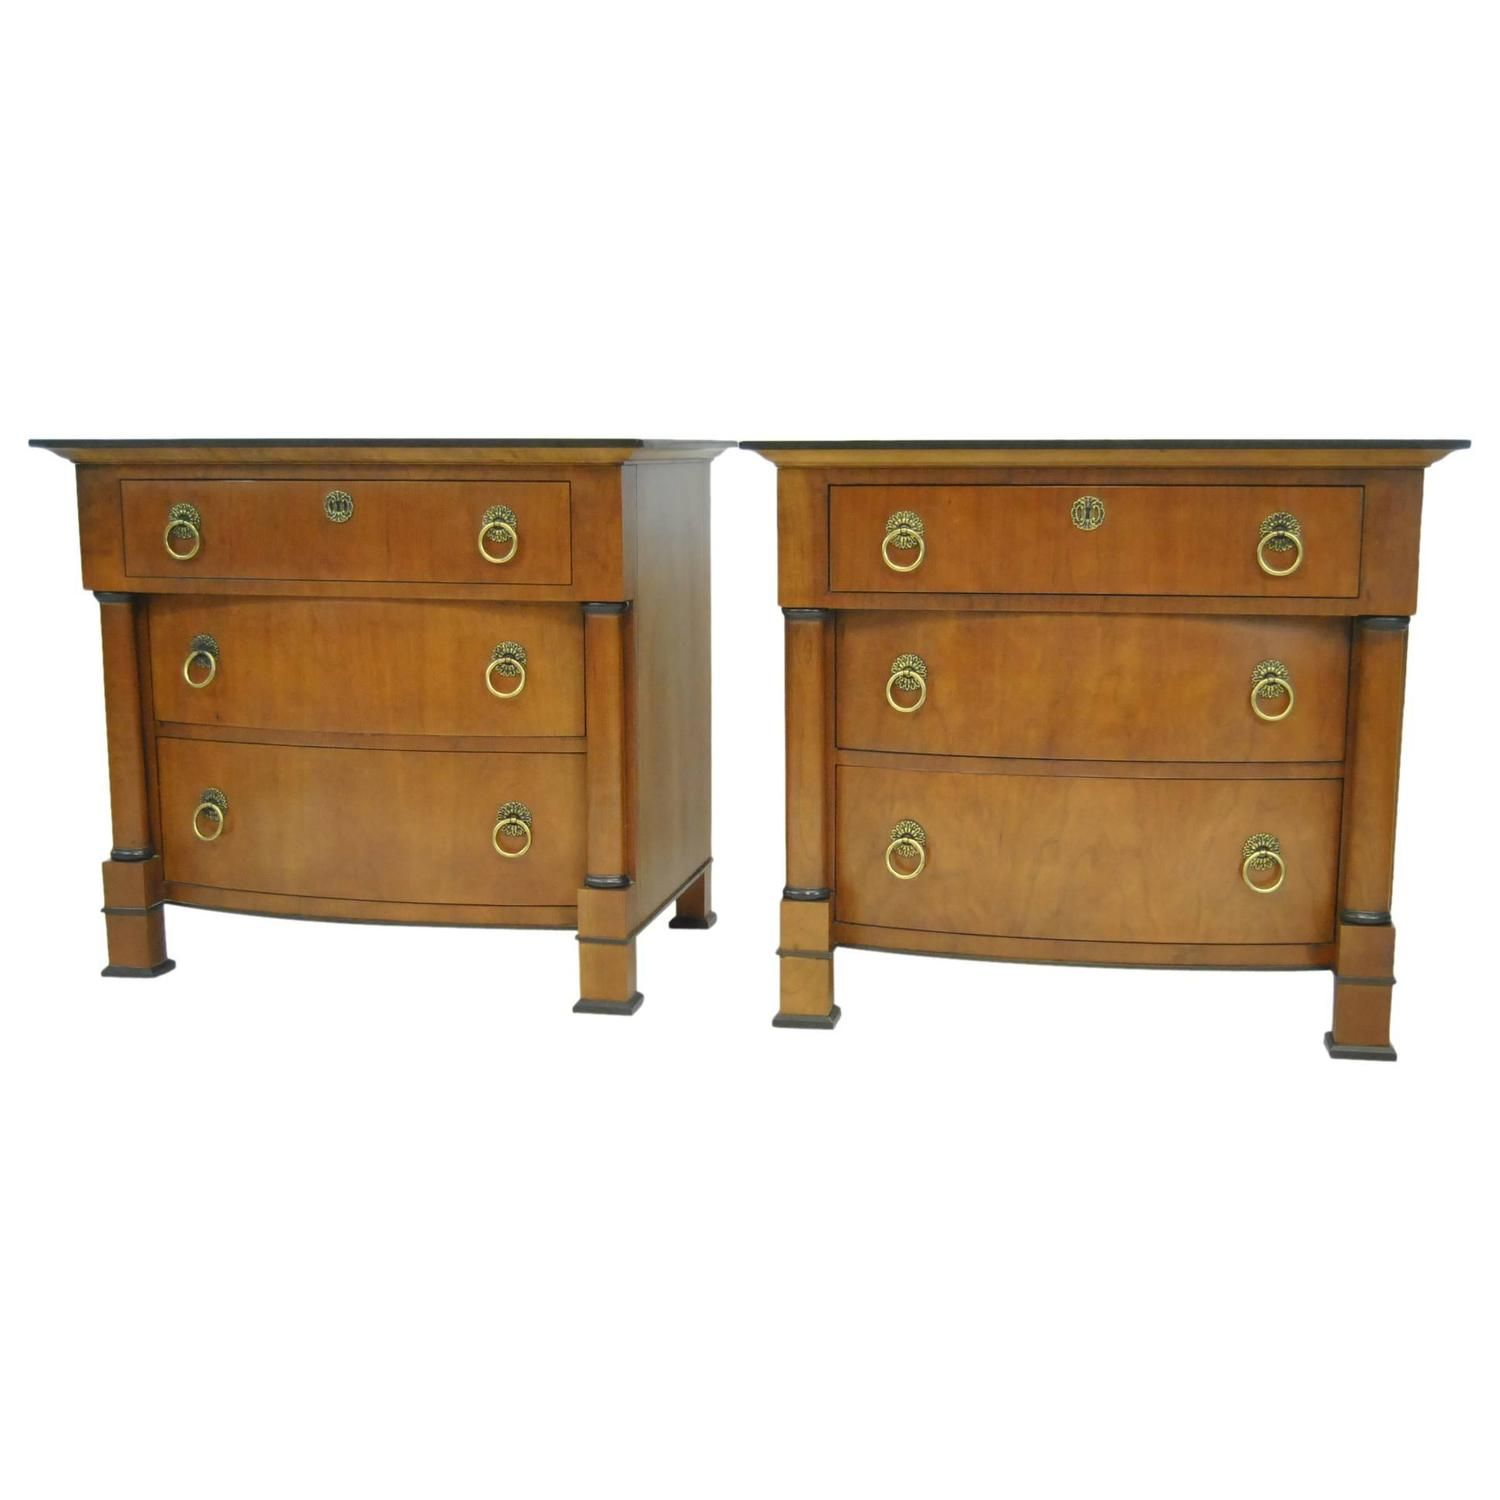 pair of henredon french empire threedrawer night stands or end tables. pair of henredon french empire threedrawer night stands or end